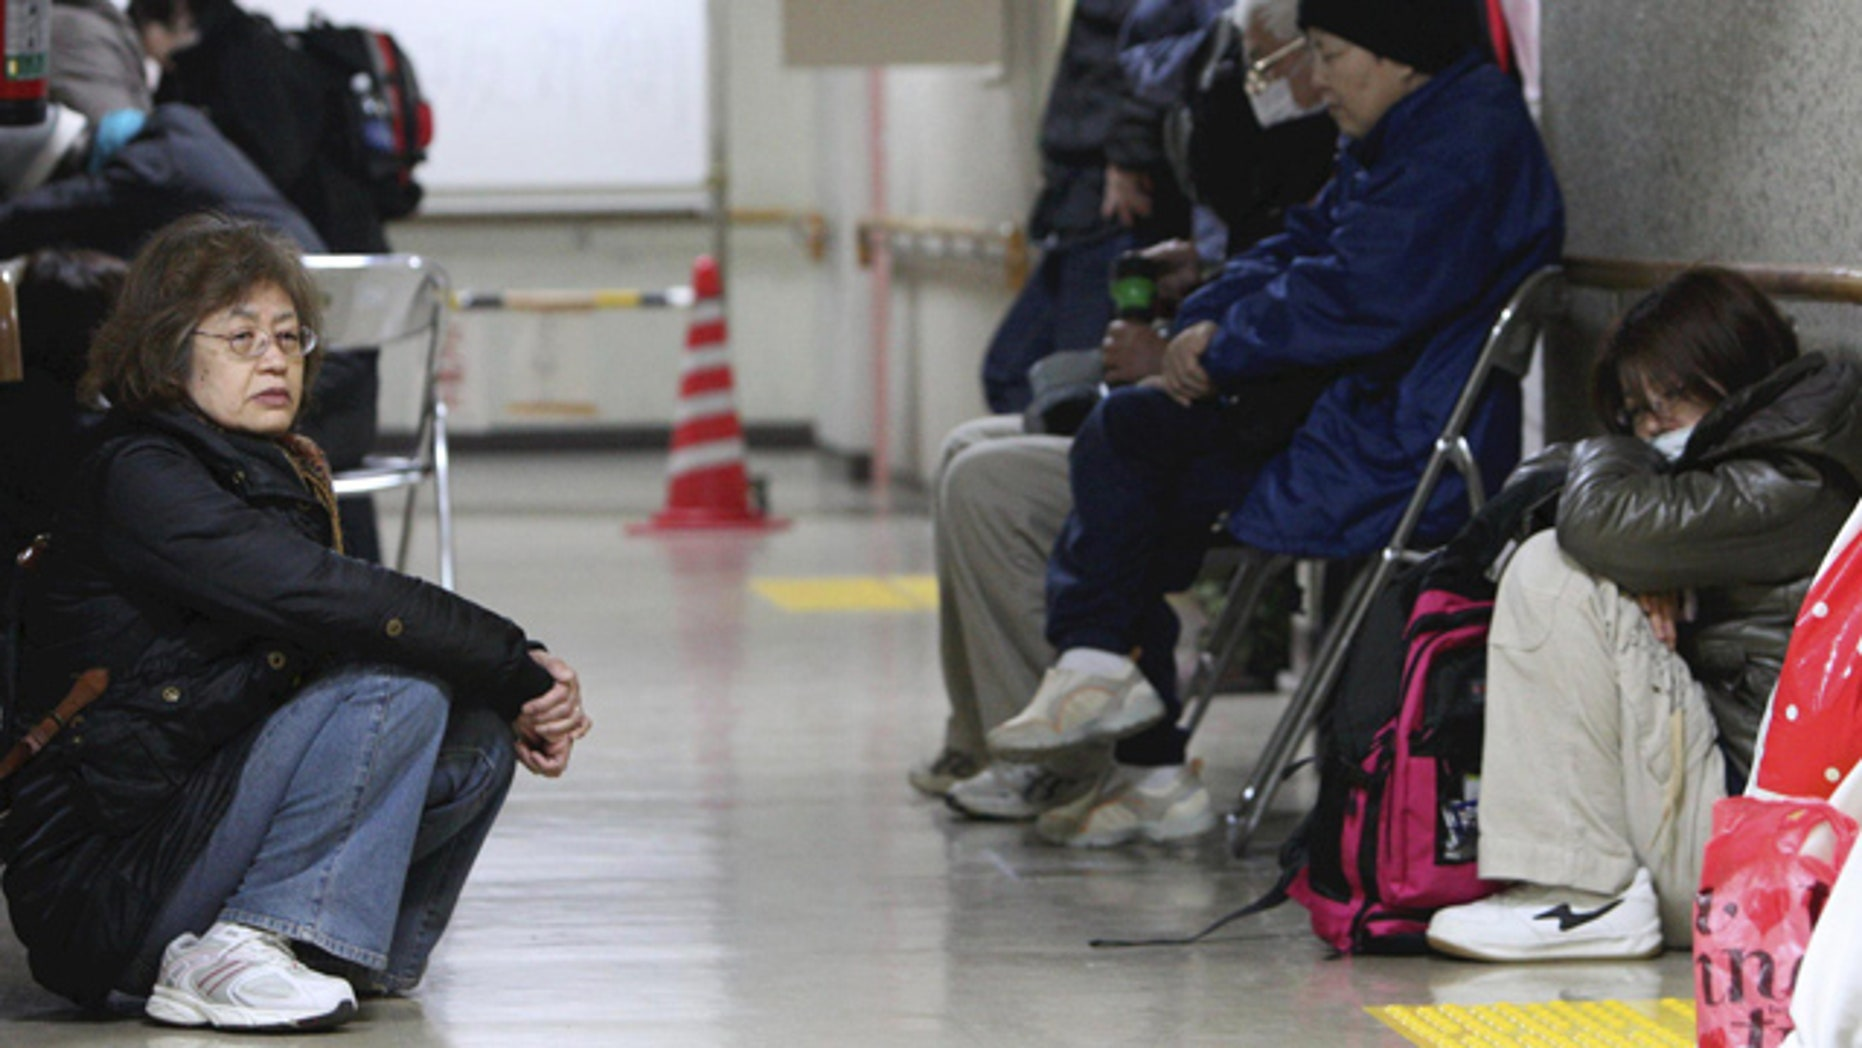 April 8, 2011: Evacuees with their belongings gather at the lobby of their shelter in Sendai, Miyagi Prefecture, northeastern Japan.